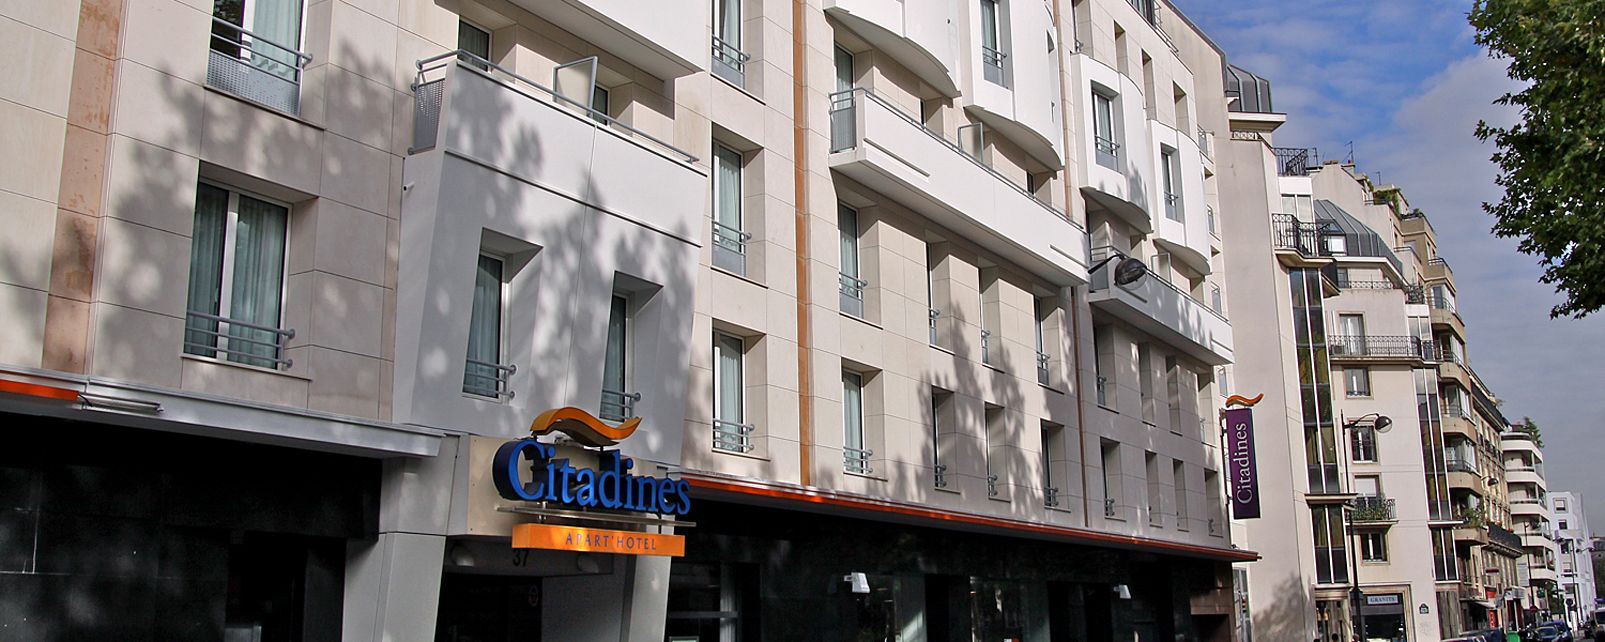 Hotel citadines paris bastille marais for Hotel marais paris